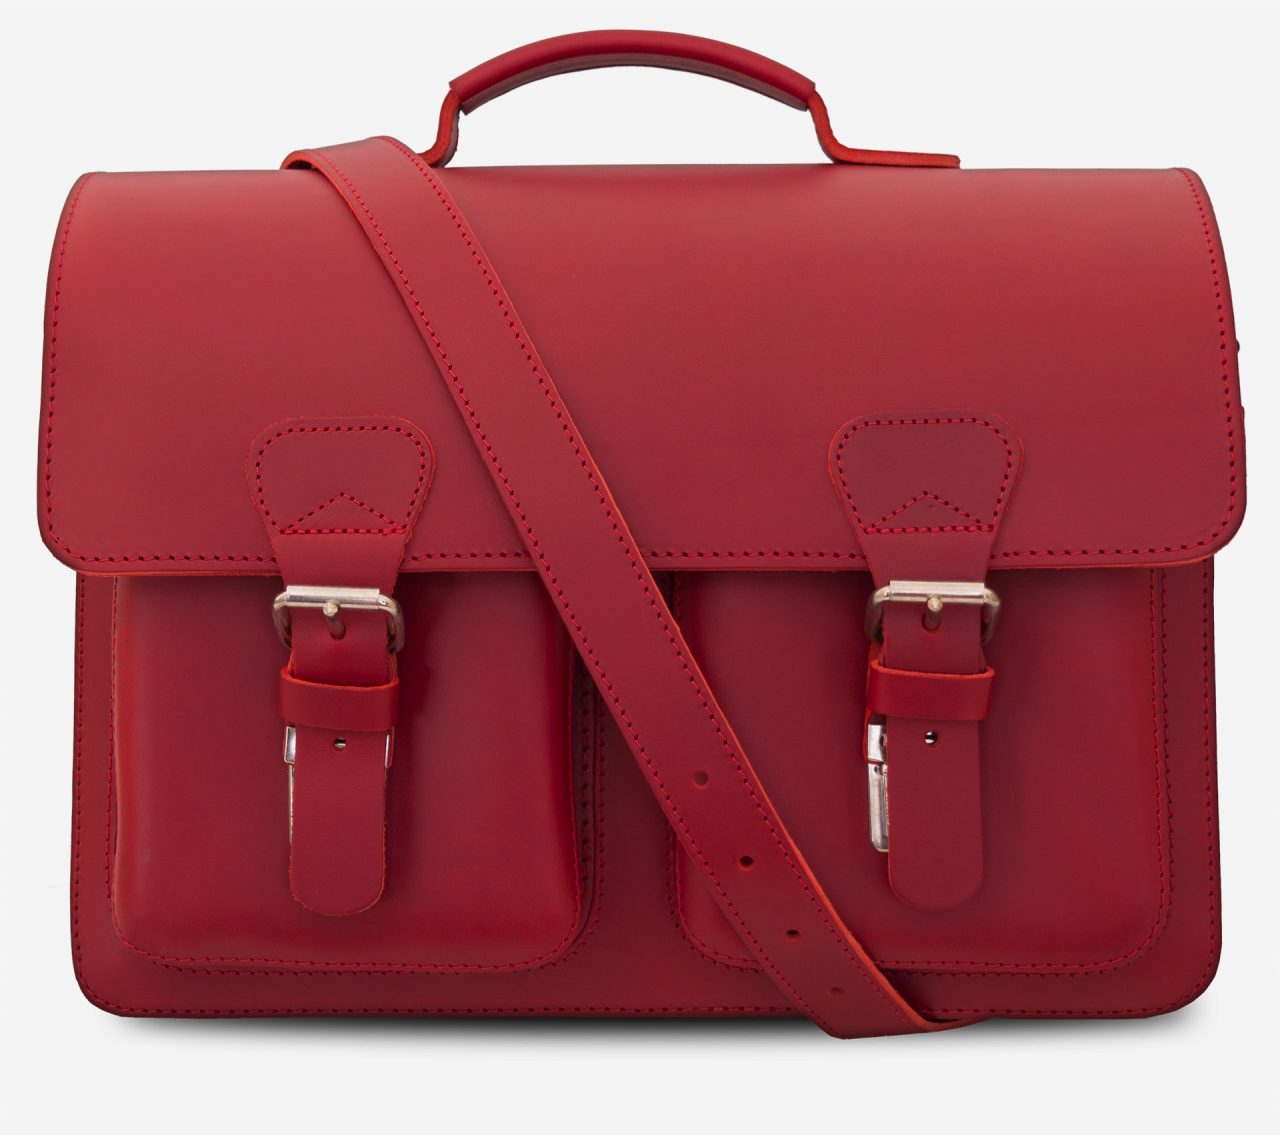 Front view of red leather satchel briefcase bag with 3 gussets and symmetric front pockets for women - 152139.